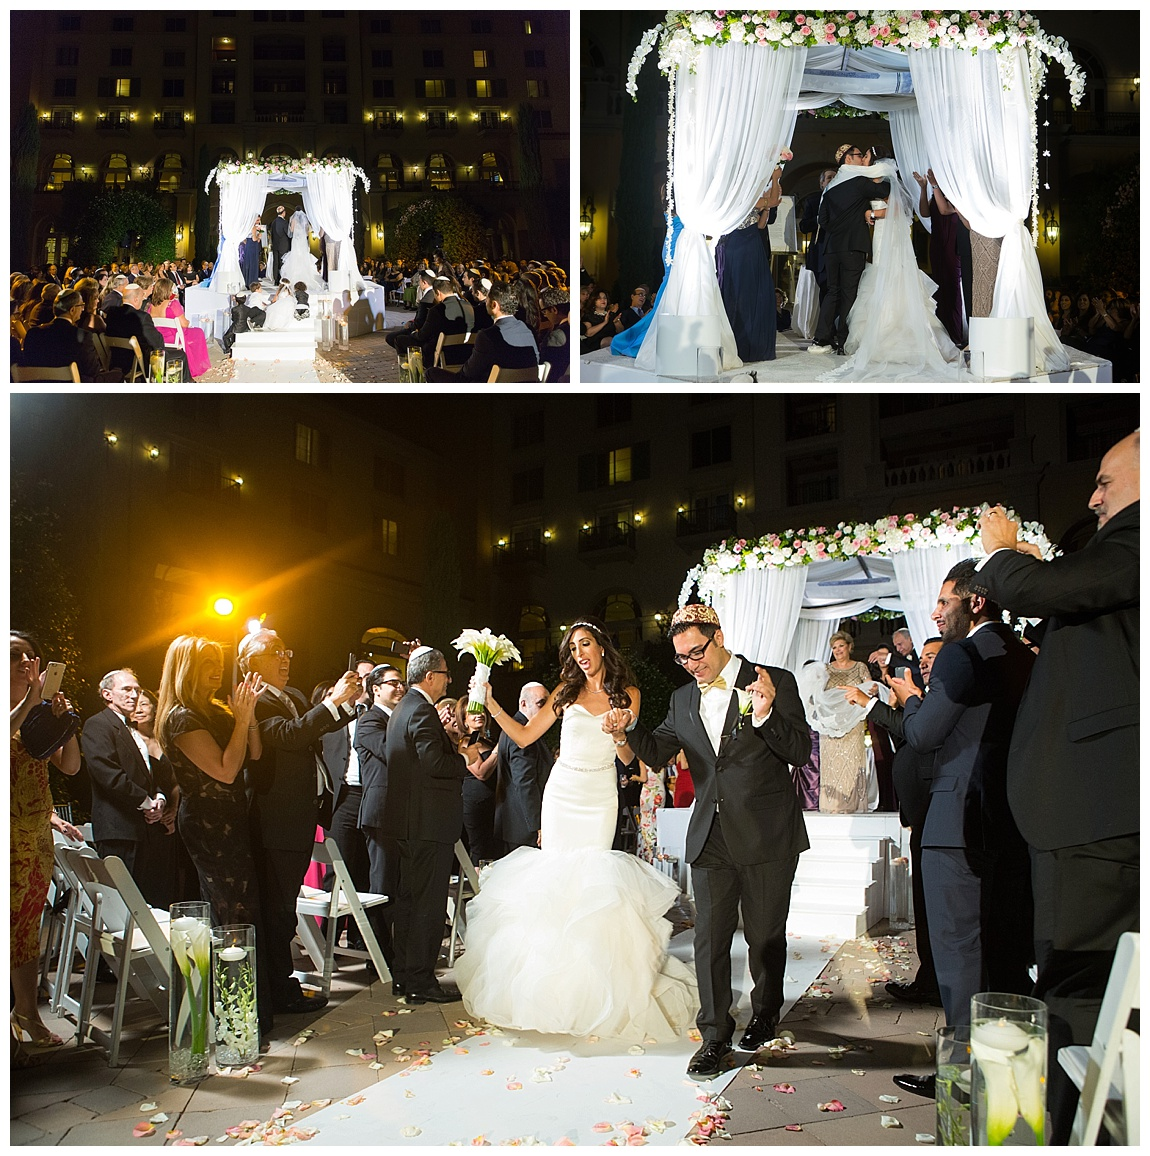 Hilton Lake Las Vegas Wedding Omid  Sharon  Las Vegas Wedding Planner  Las Vegas Weddings